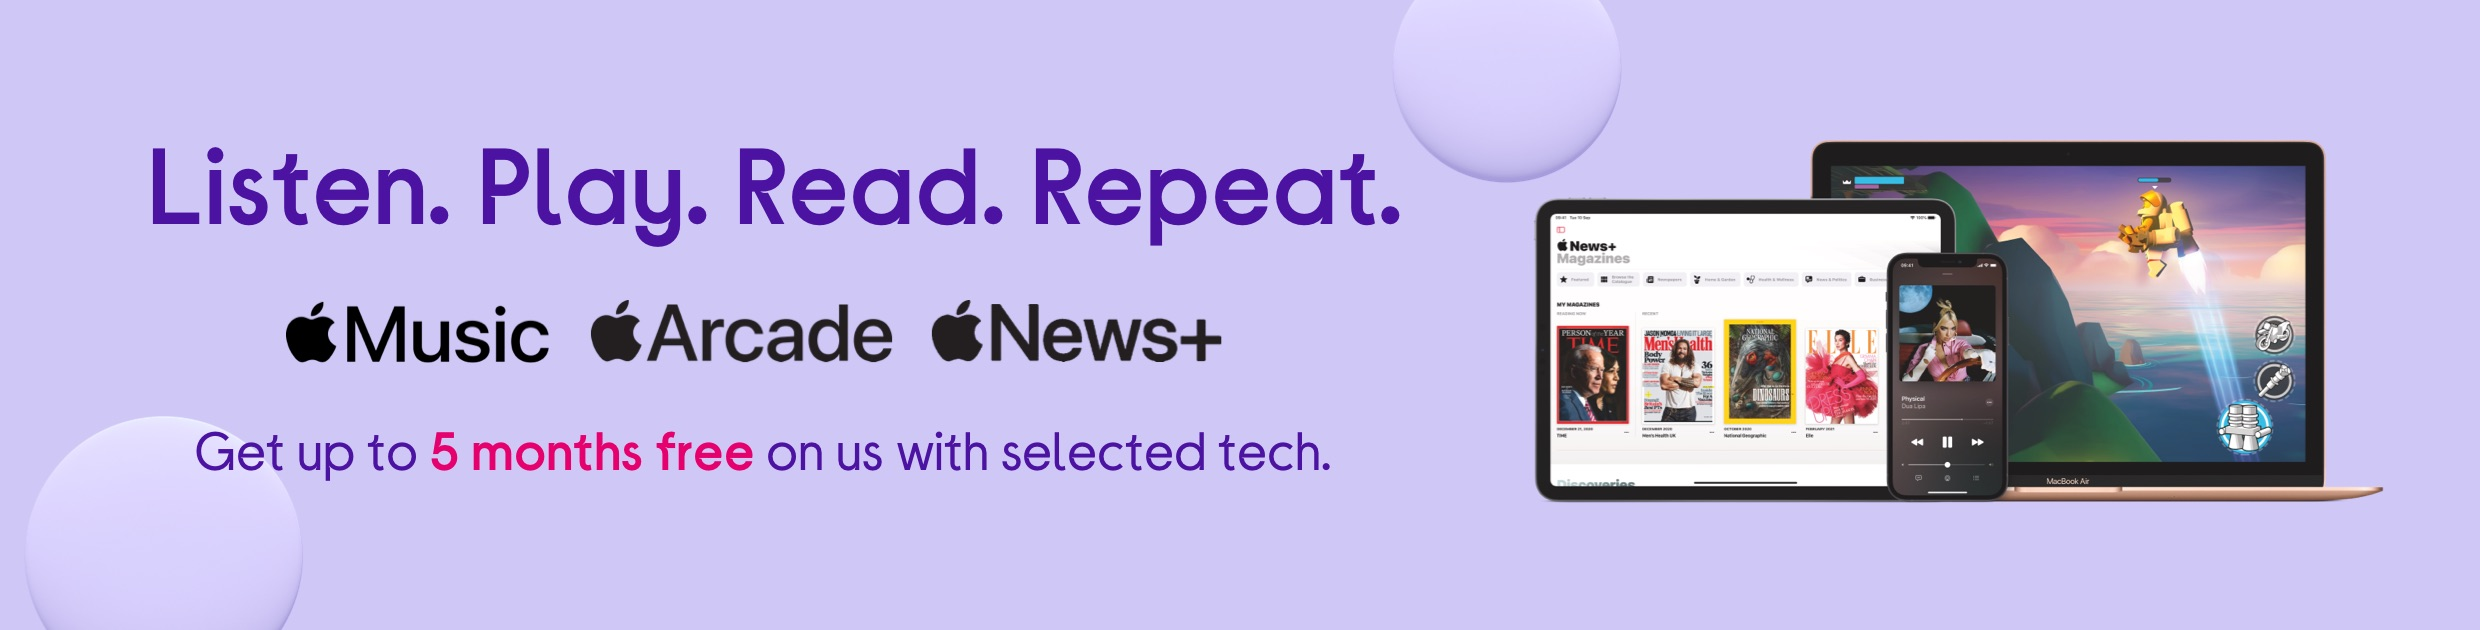 Get up to 5 months free Apple Arcade, News+ & Music with selected tech.